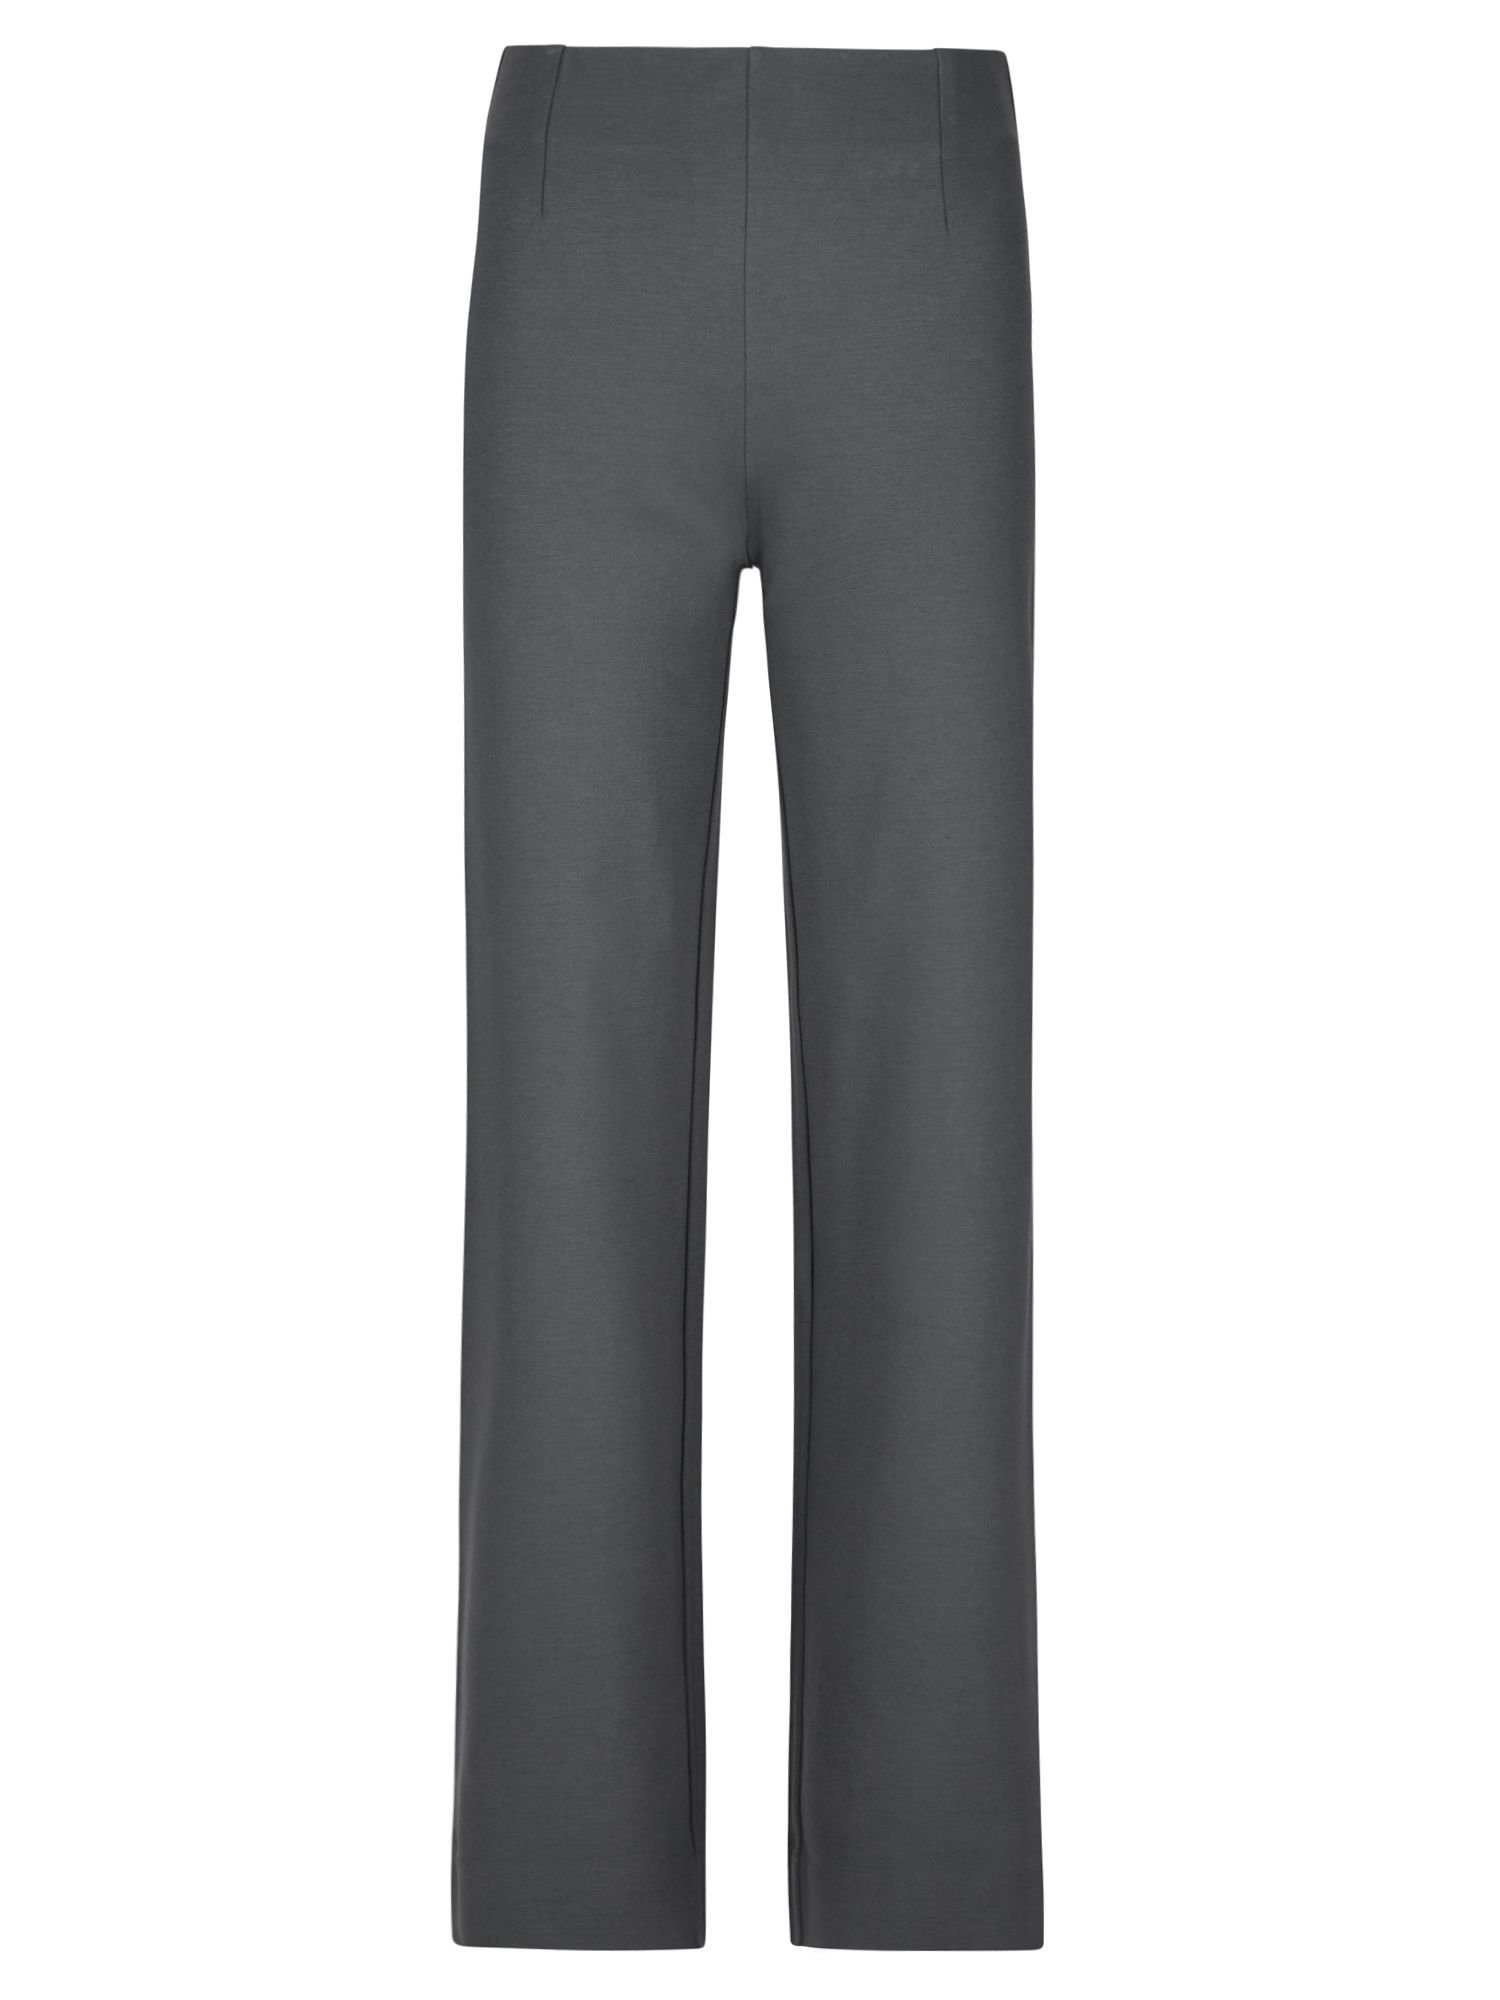 Winser London Miracle Trousers, Grey